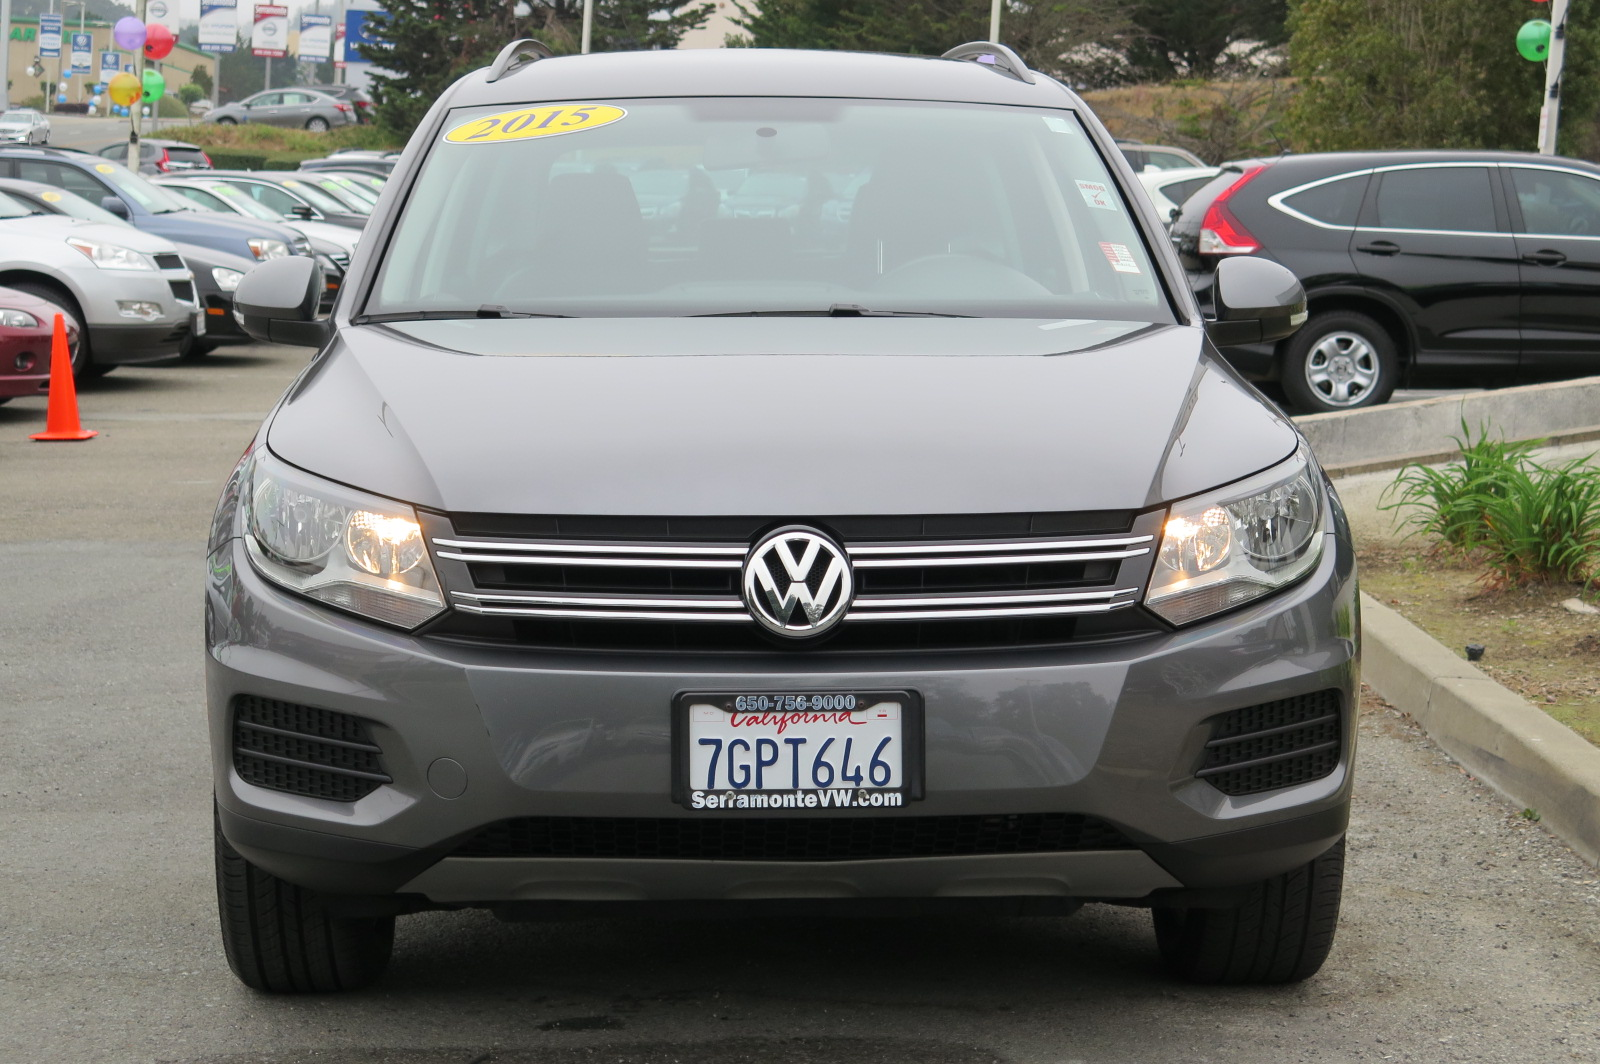 2015 VOLKSWAGEN TIGUAN 20T SE 4MOTION SPORT UTILITY gray 4-cyl turbo 20 liter automatic check